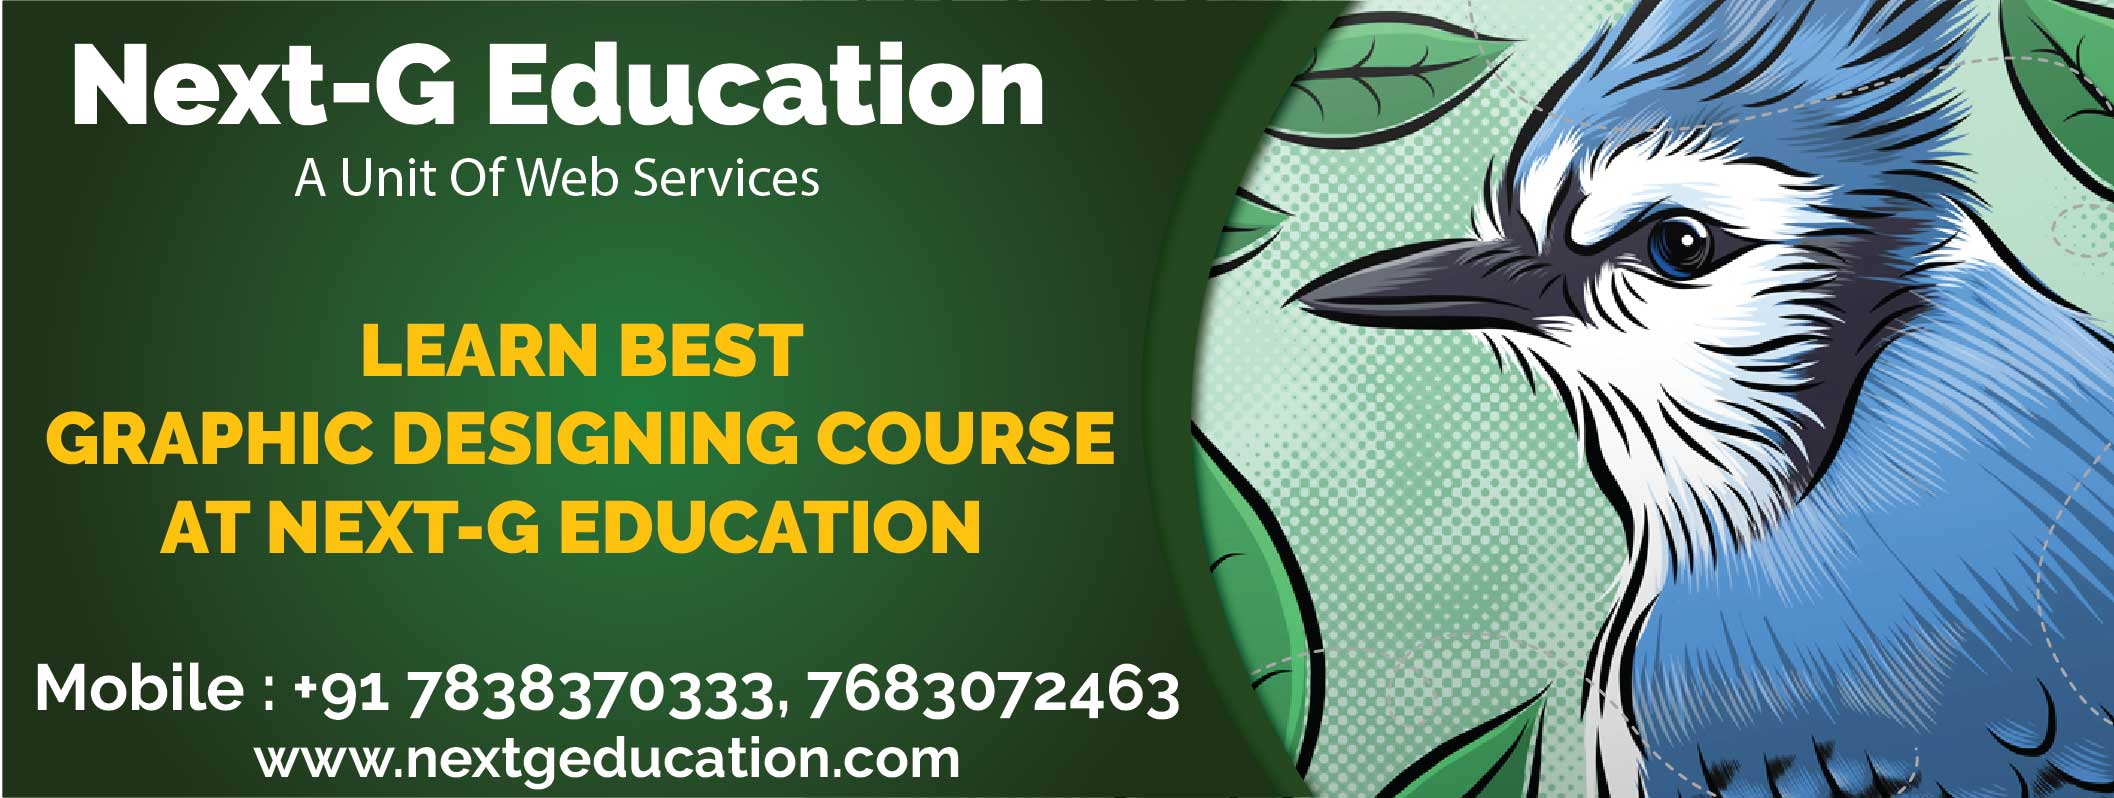 Learn best Graphic Designing Courses at Next-G Education